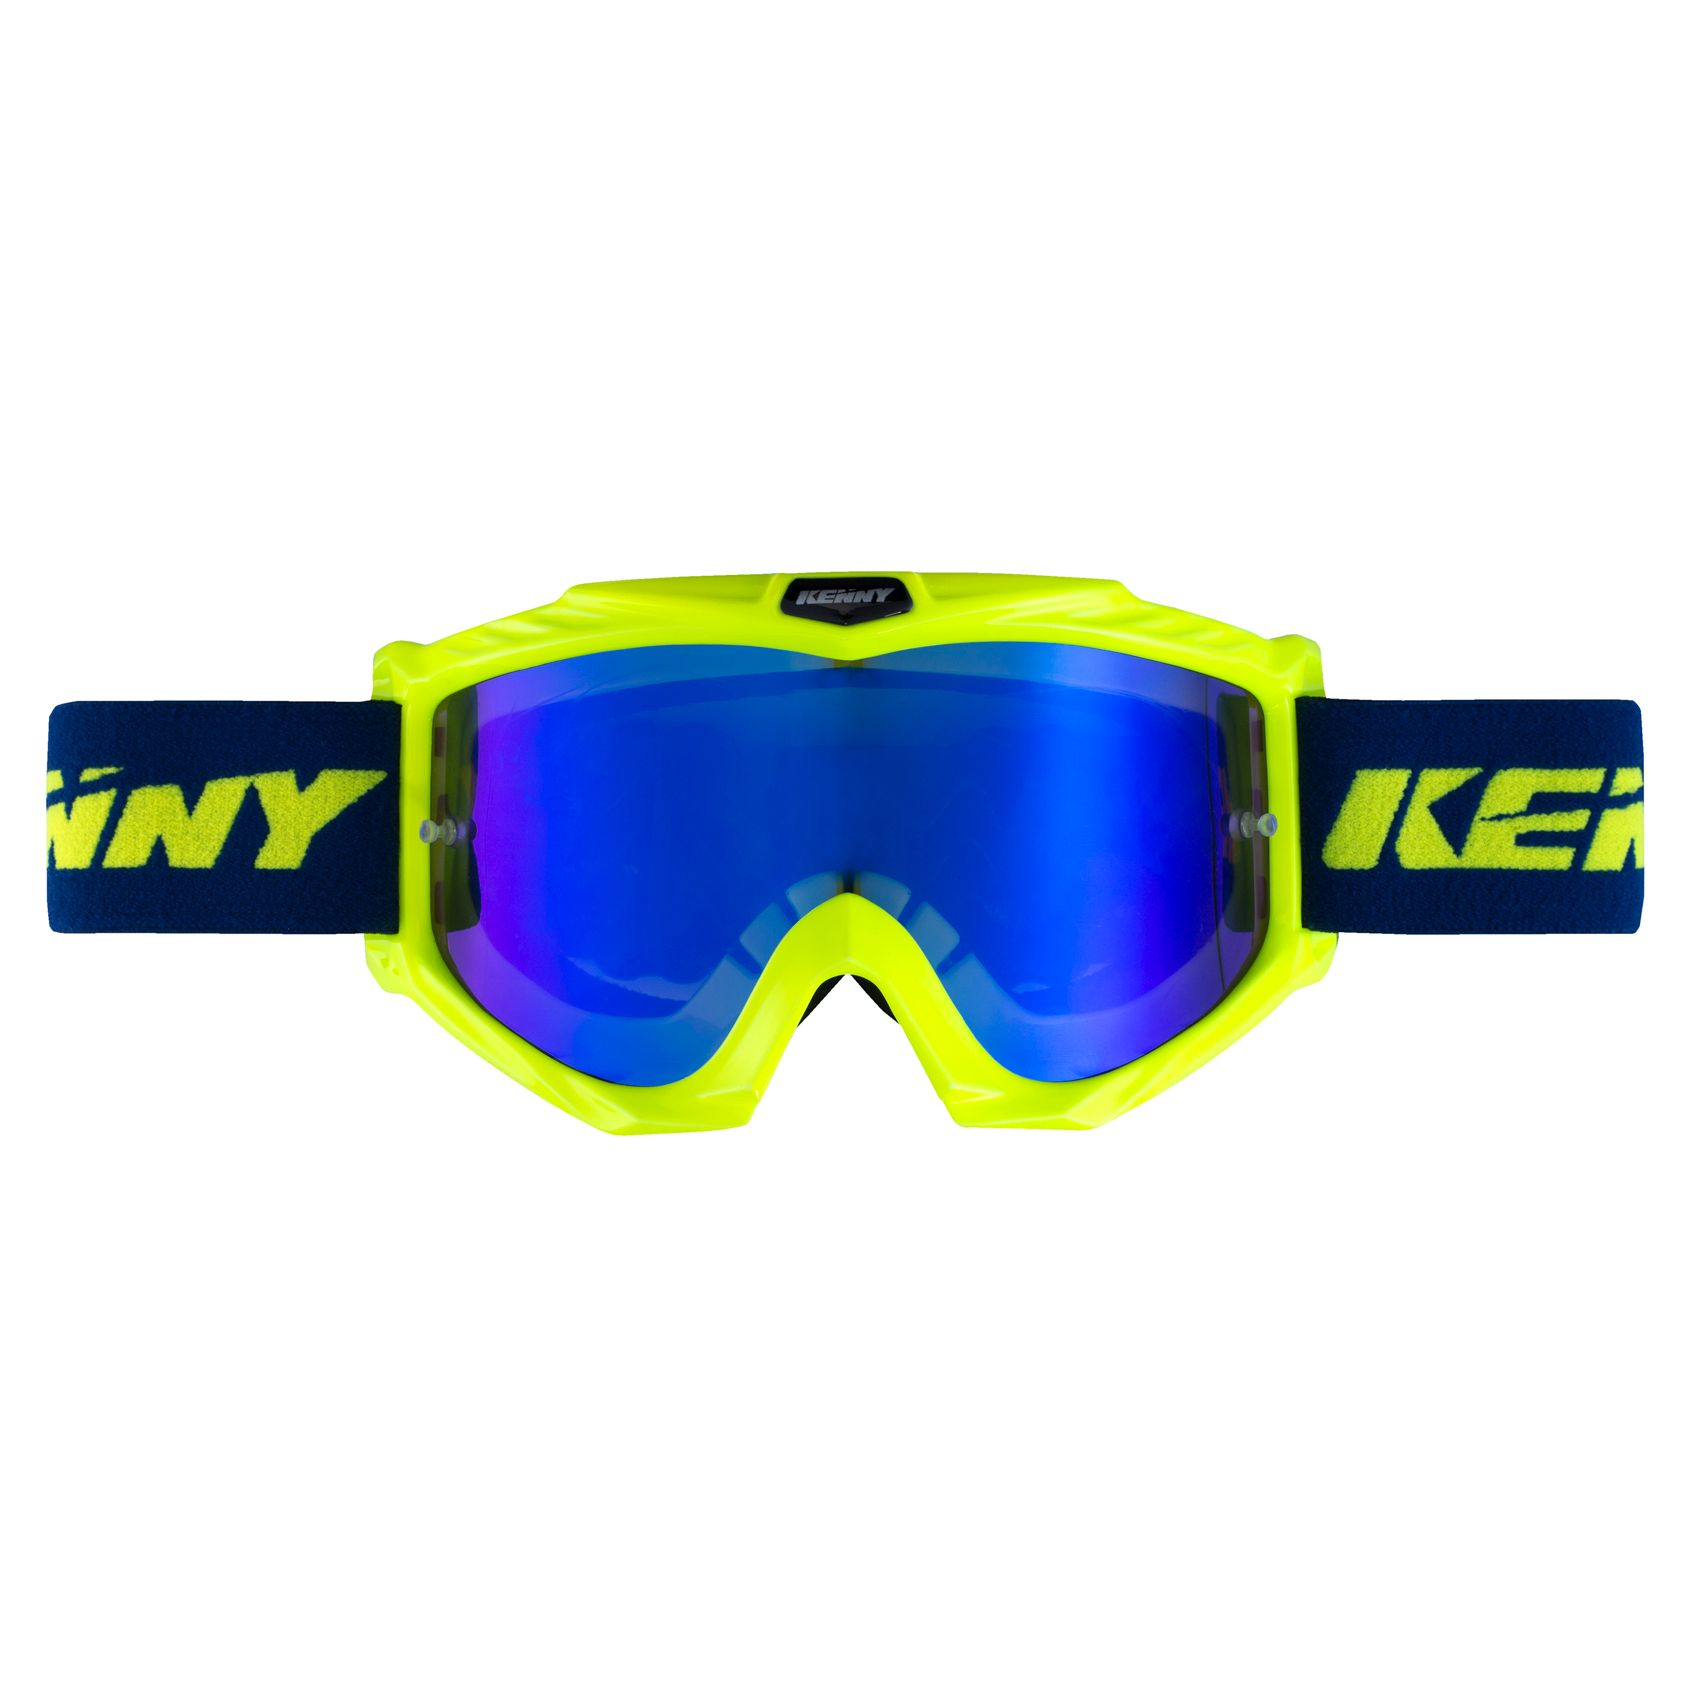 Masque cross Kenny TRACK + - BLEU JAUNE FLUO 2020